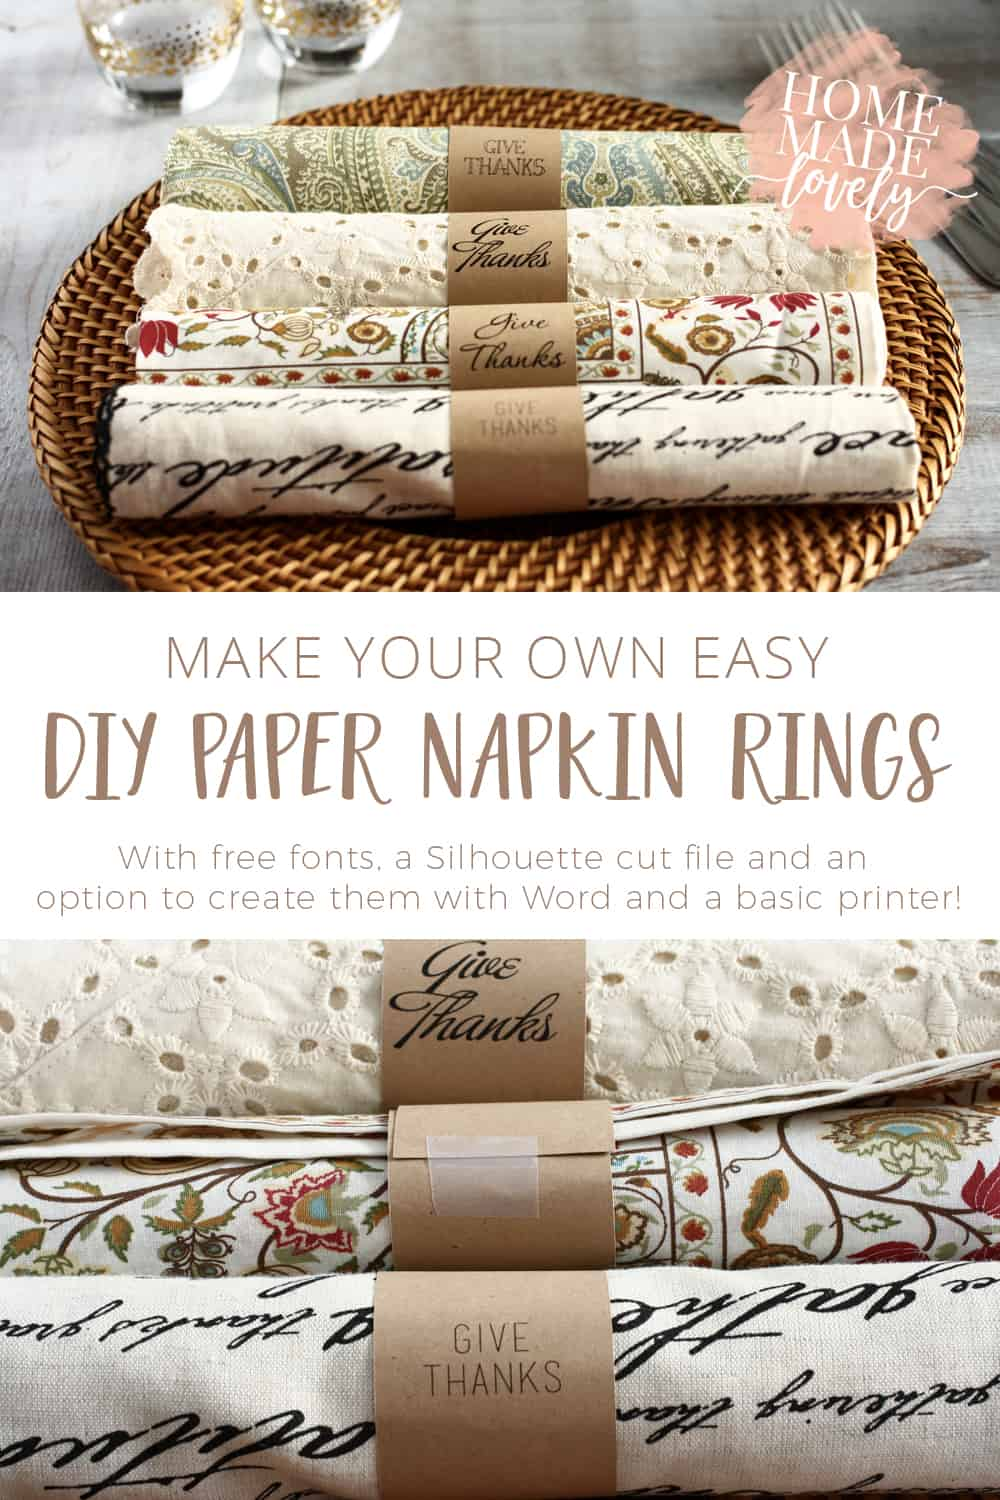 photo regarding Printable Napkin Rings Template known as Basic Do-it-yourself Paper Napkin Rings with Cost-free Fonts Slash Record!